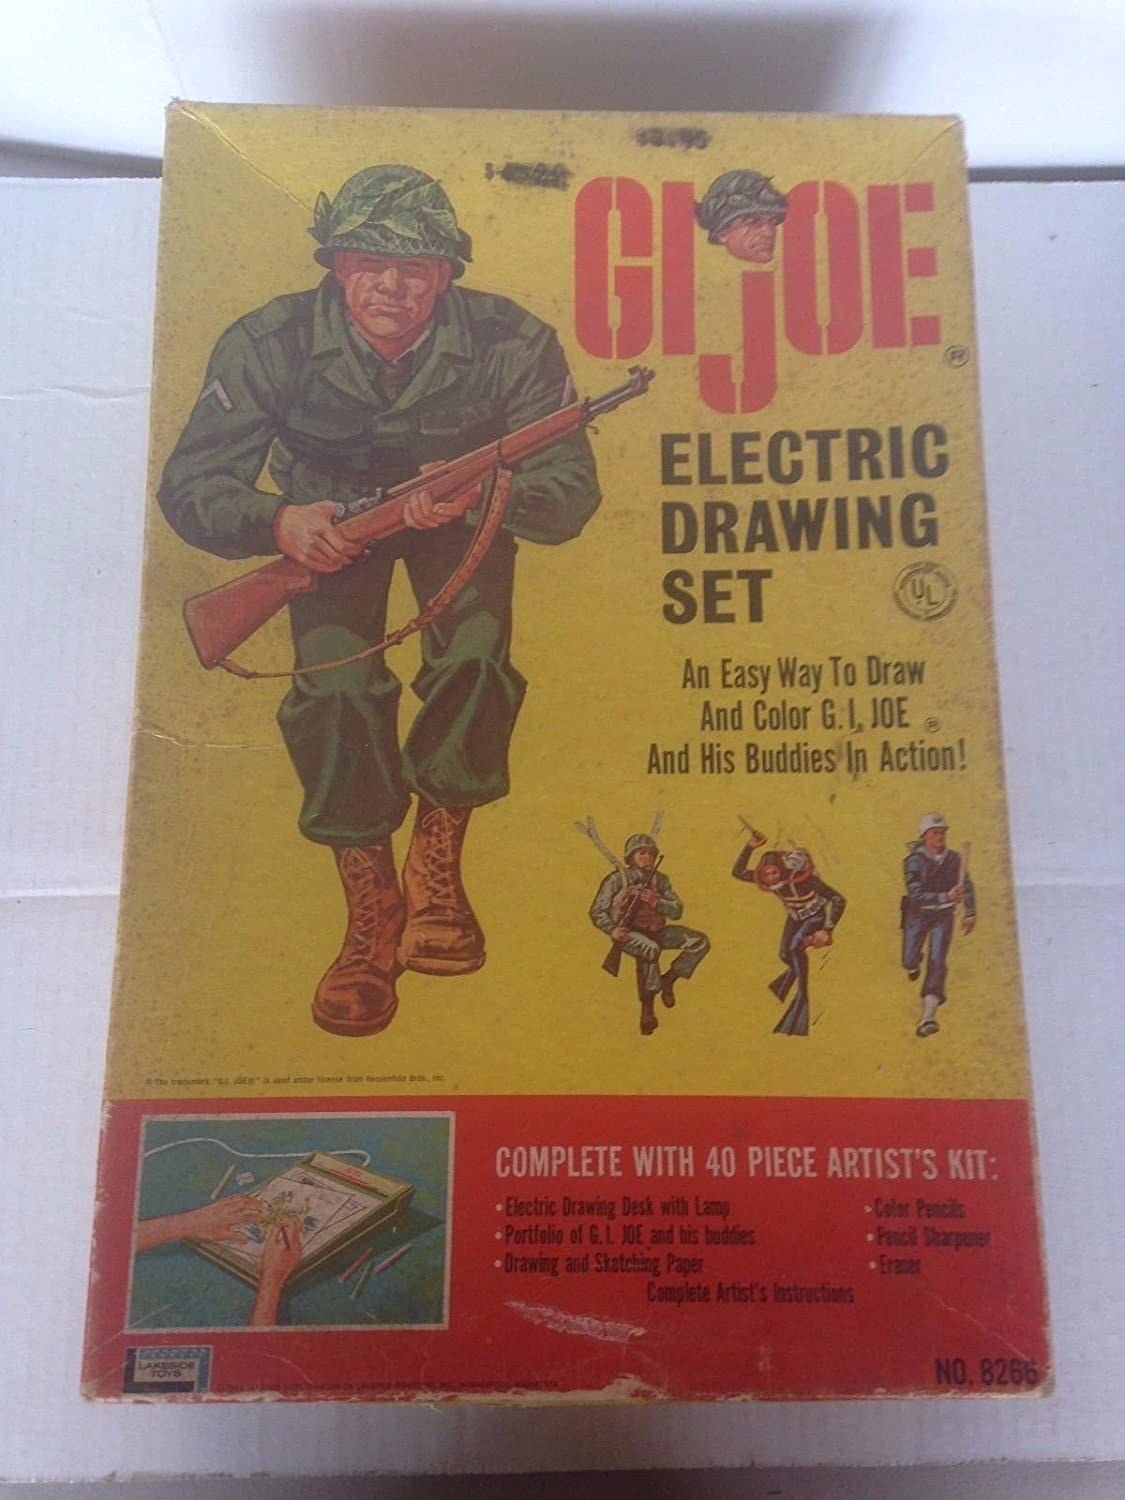 Gi Joe Electric Drawing Set Original Box 1965 At Amazons Electrical Text Book Entertainment Collectibles Store